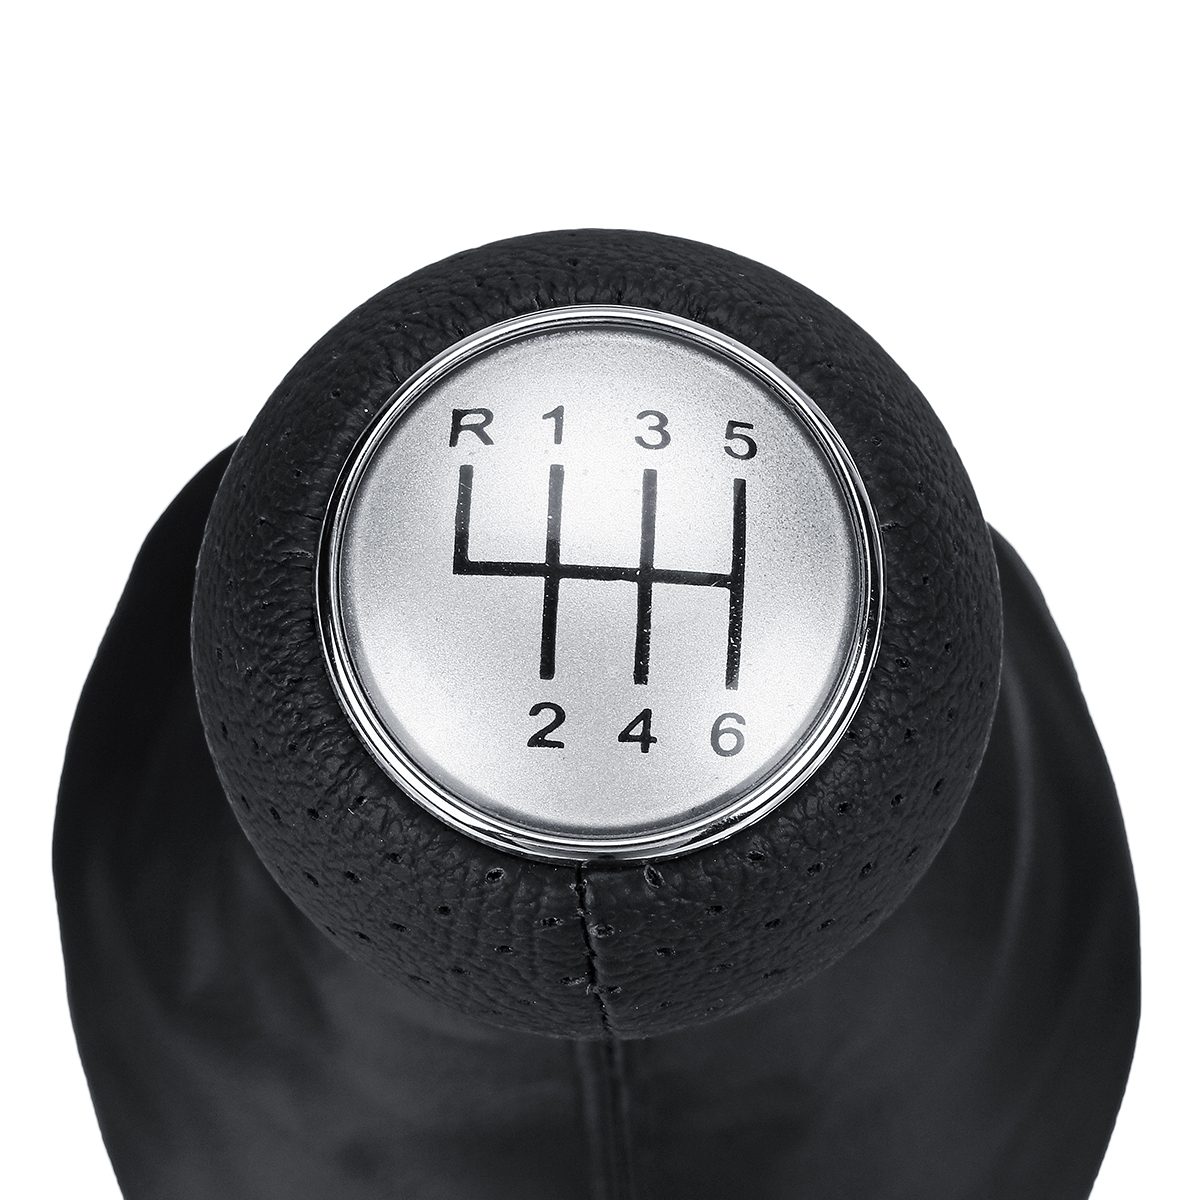 6 Speed Manual Gear Shift Knob Boot Gaiter Cover for Polo VW Golf MK4 Seat IBIZA